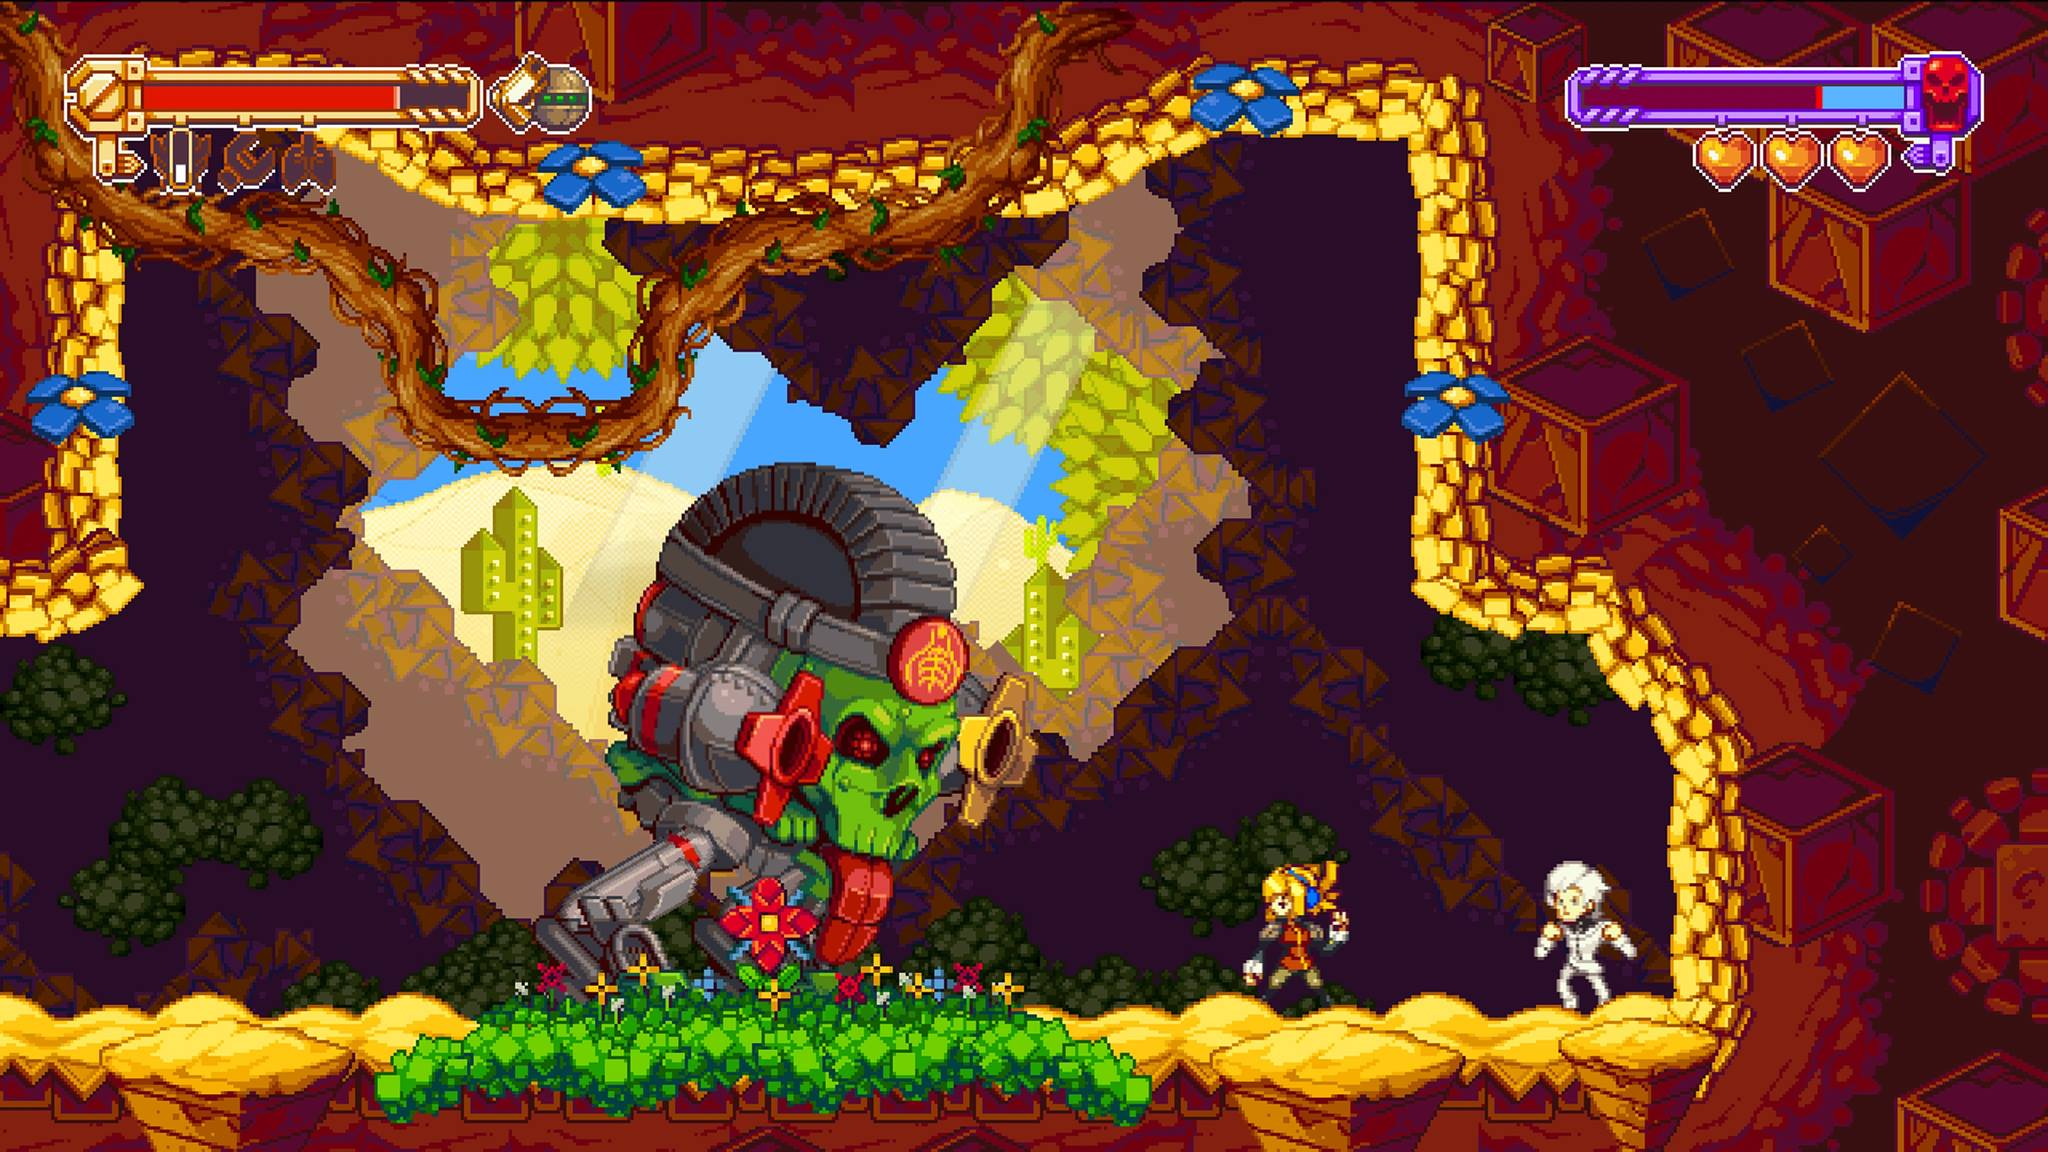 Iconoclasts Review Explore Upgrade Skip The Dialogue